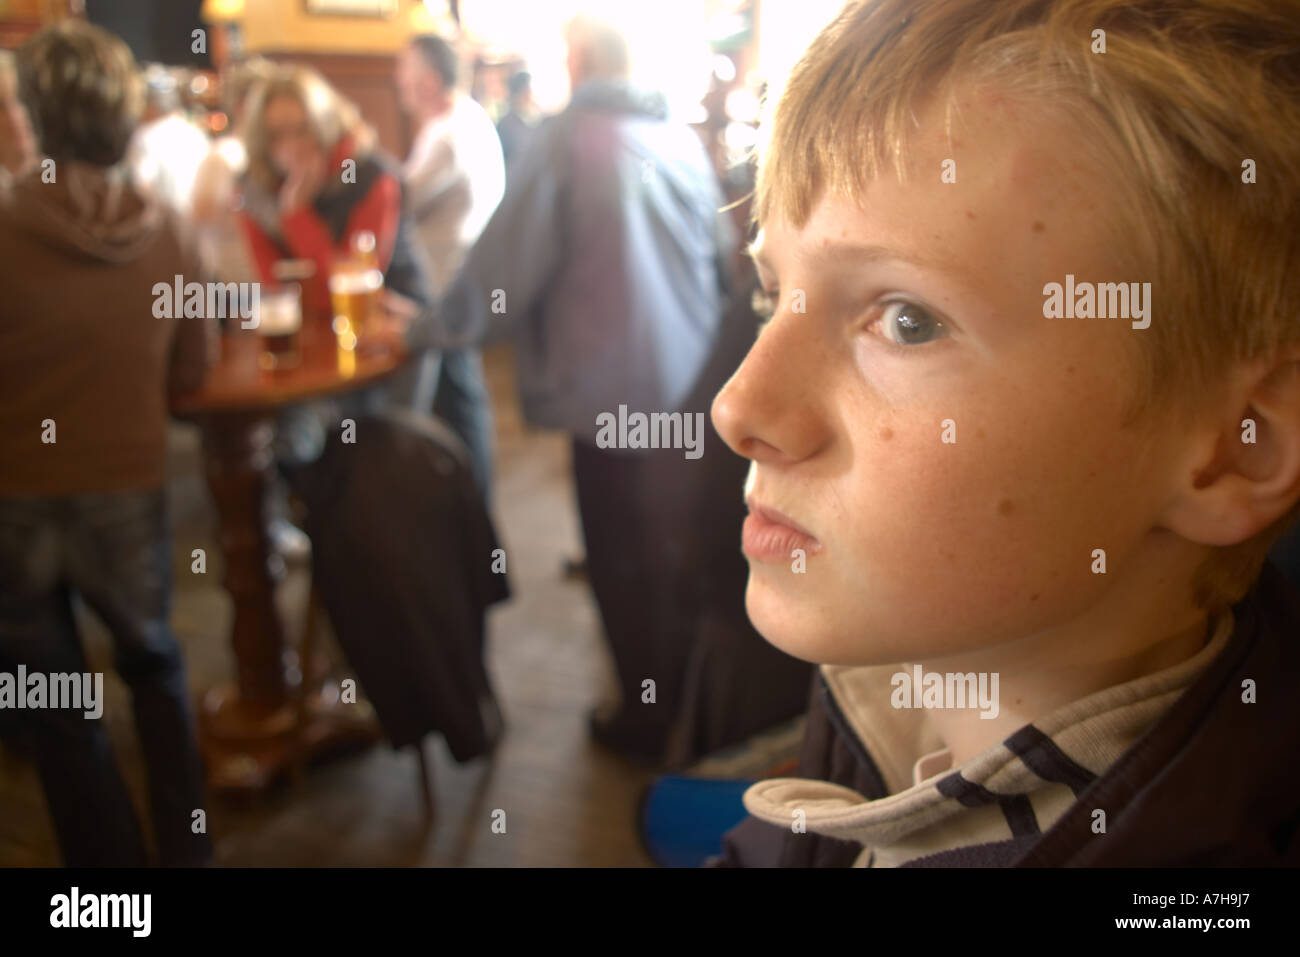 wary looking boy in pub with adults drinking beer in background - Stock Image